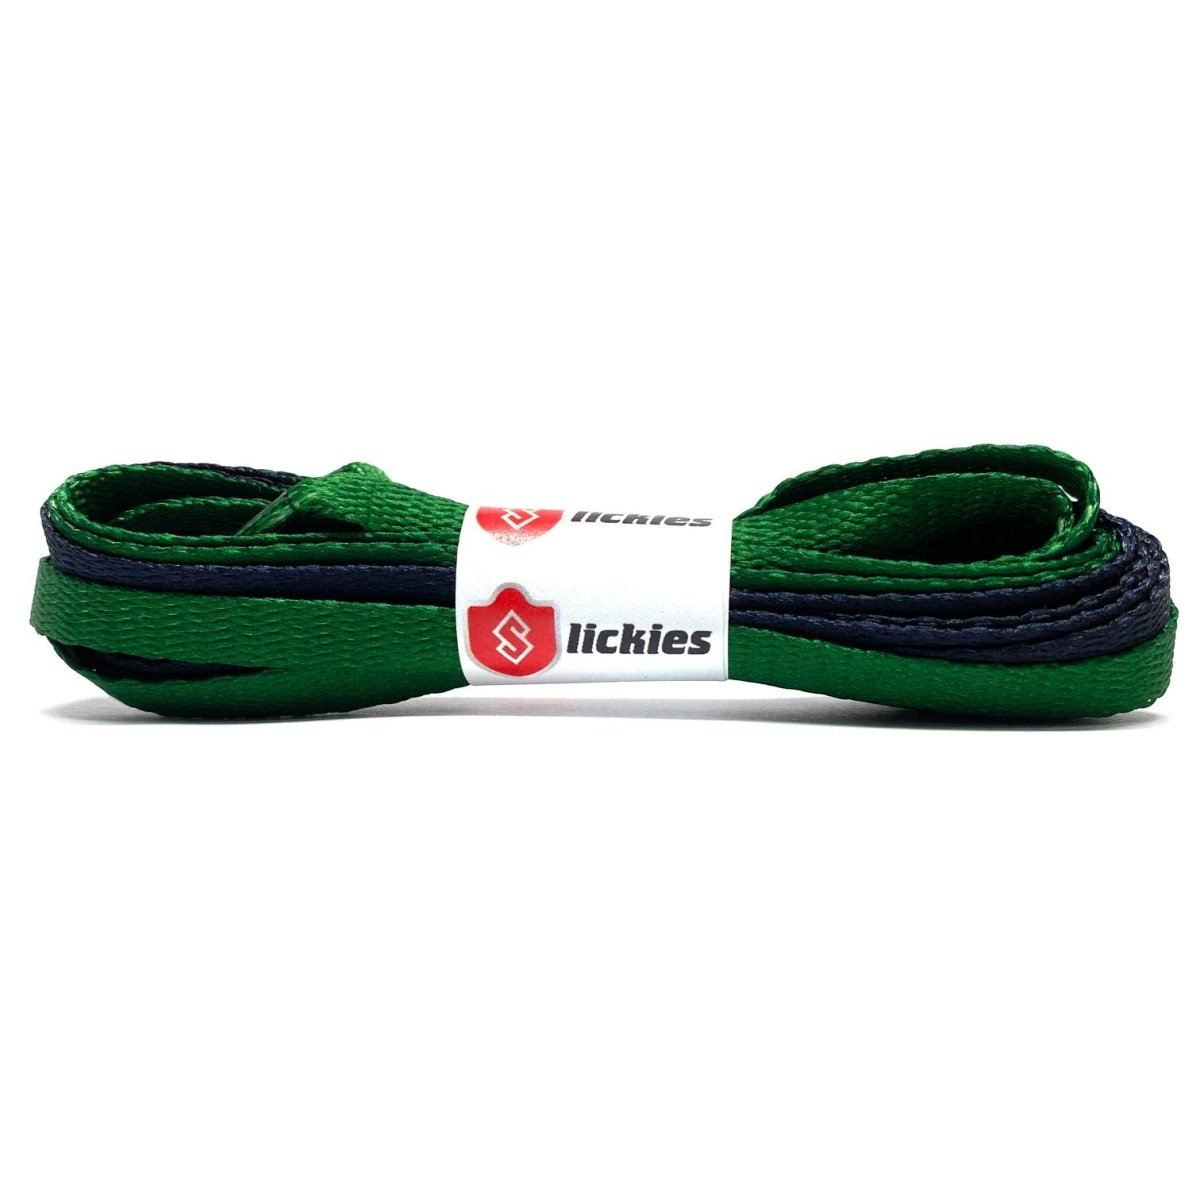 Basics 2TONE Jordan Flat Laces - Black With Pine Green Tips For Air Jordan 1 Pine Green